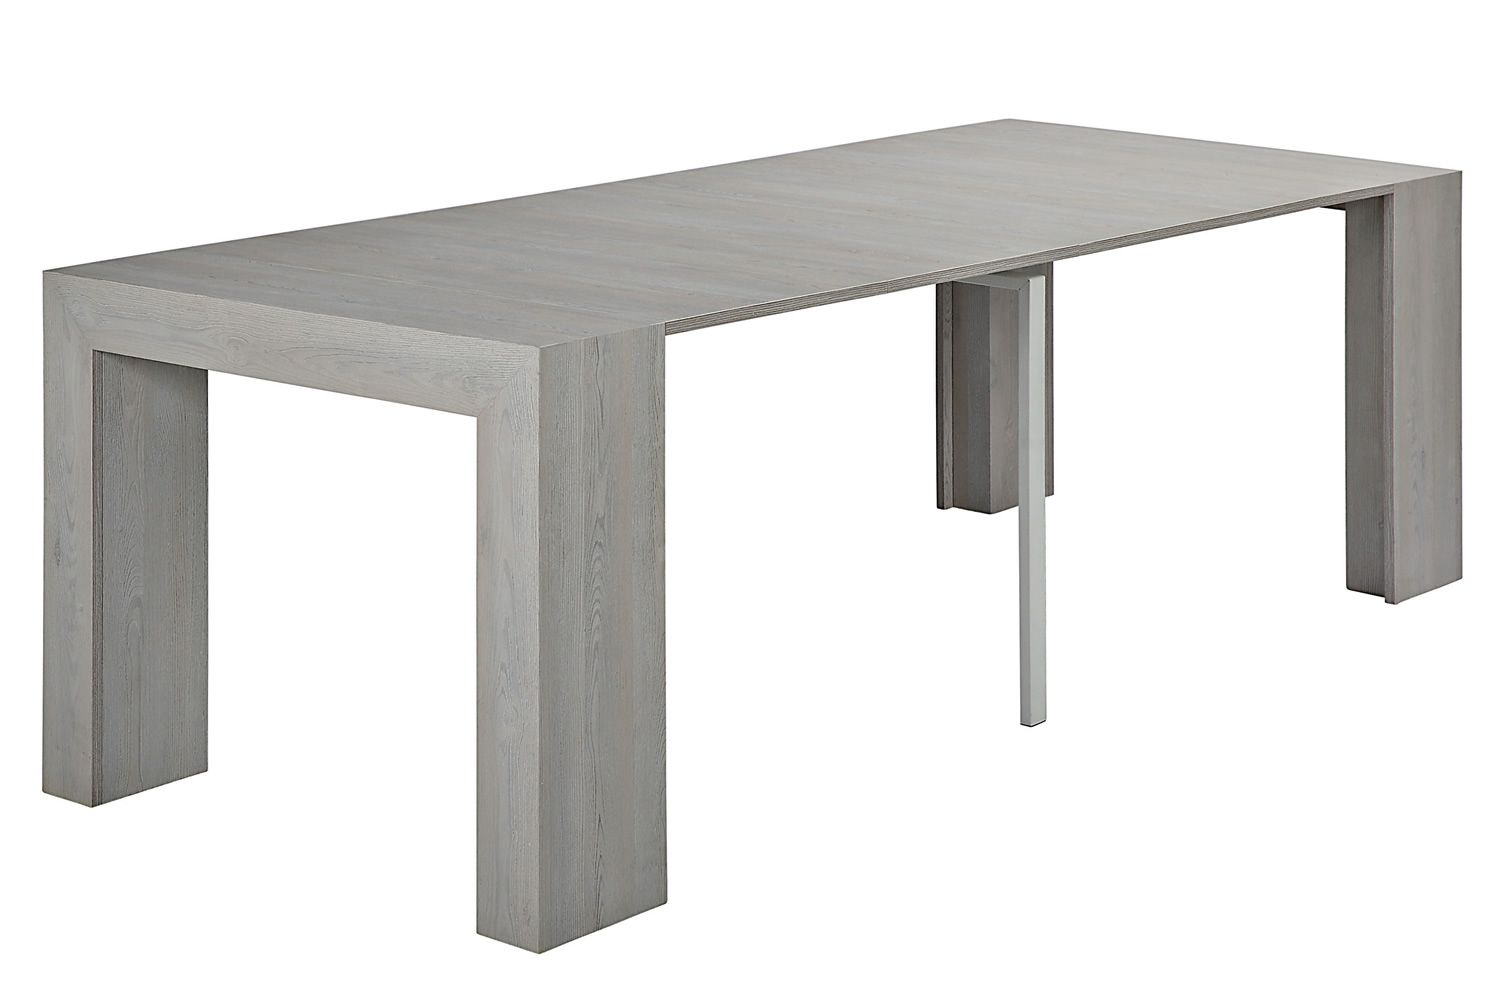 Table a rallonge console maison design - Table a rallonge console ...